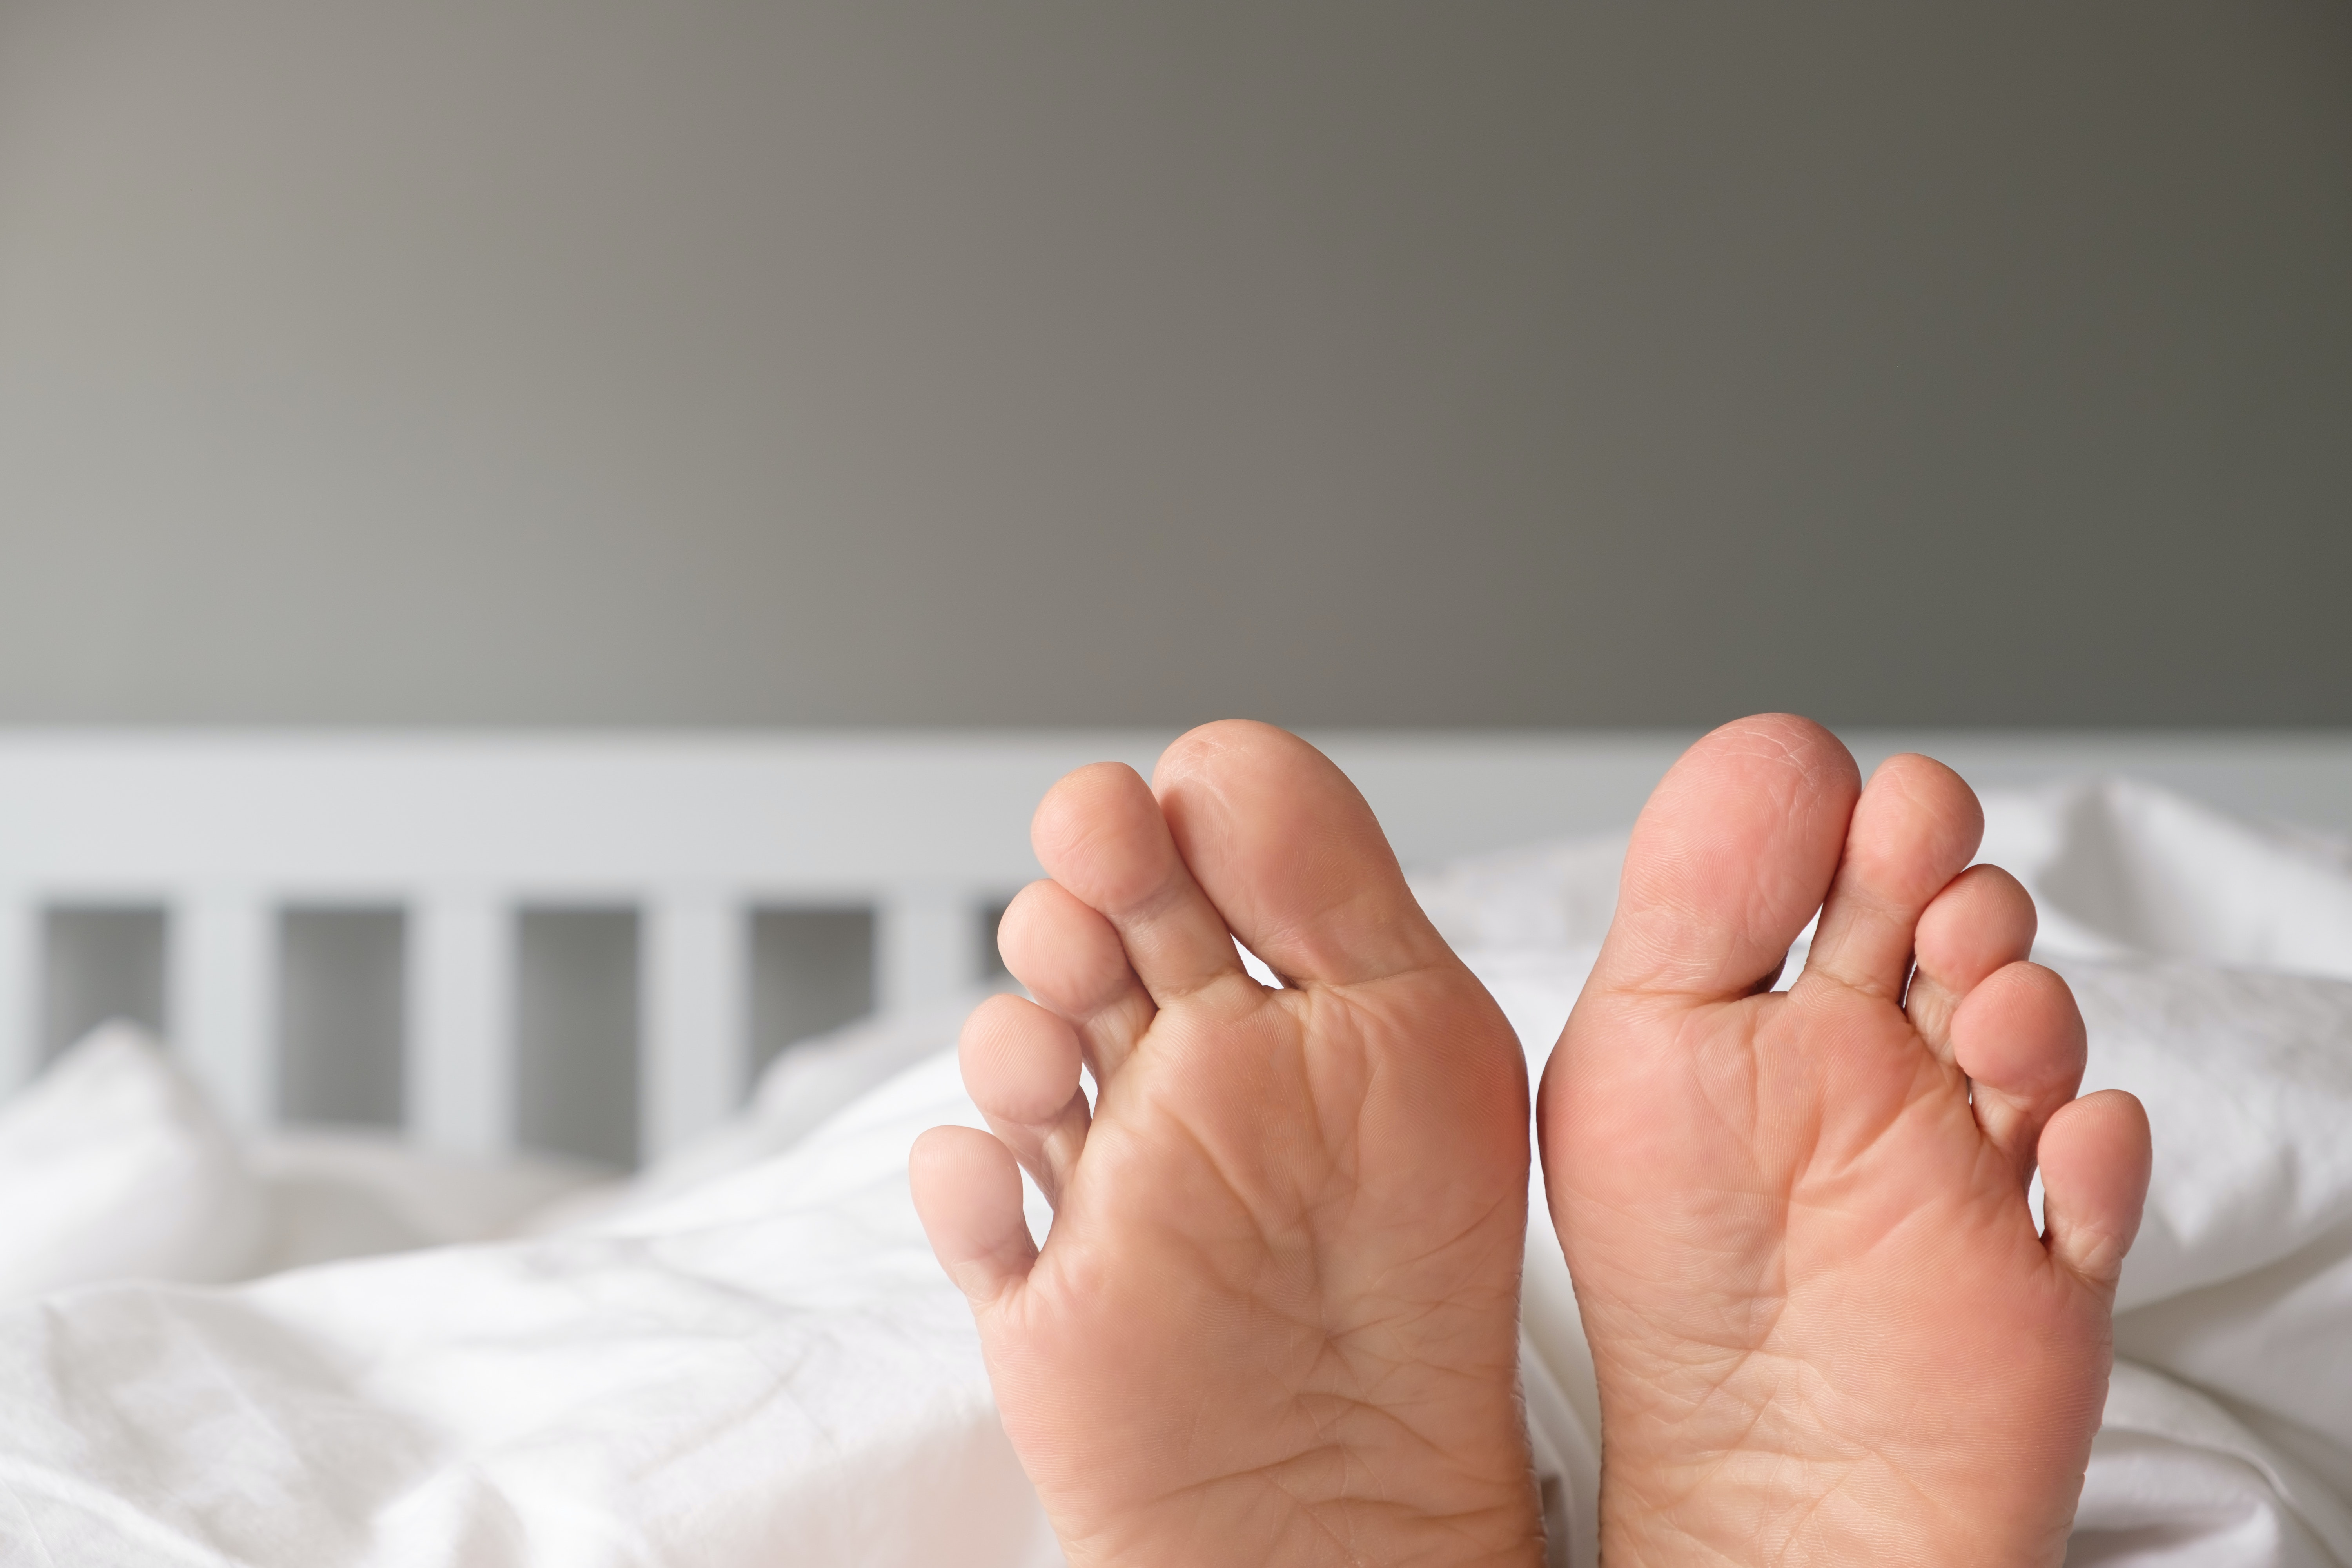 An image depicting a person suffering from swelling of the 2nd, 3rd, 4th or 5th toe symptoms